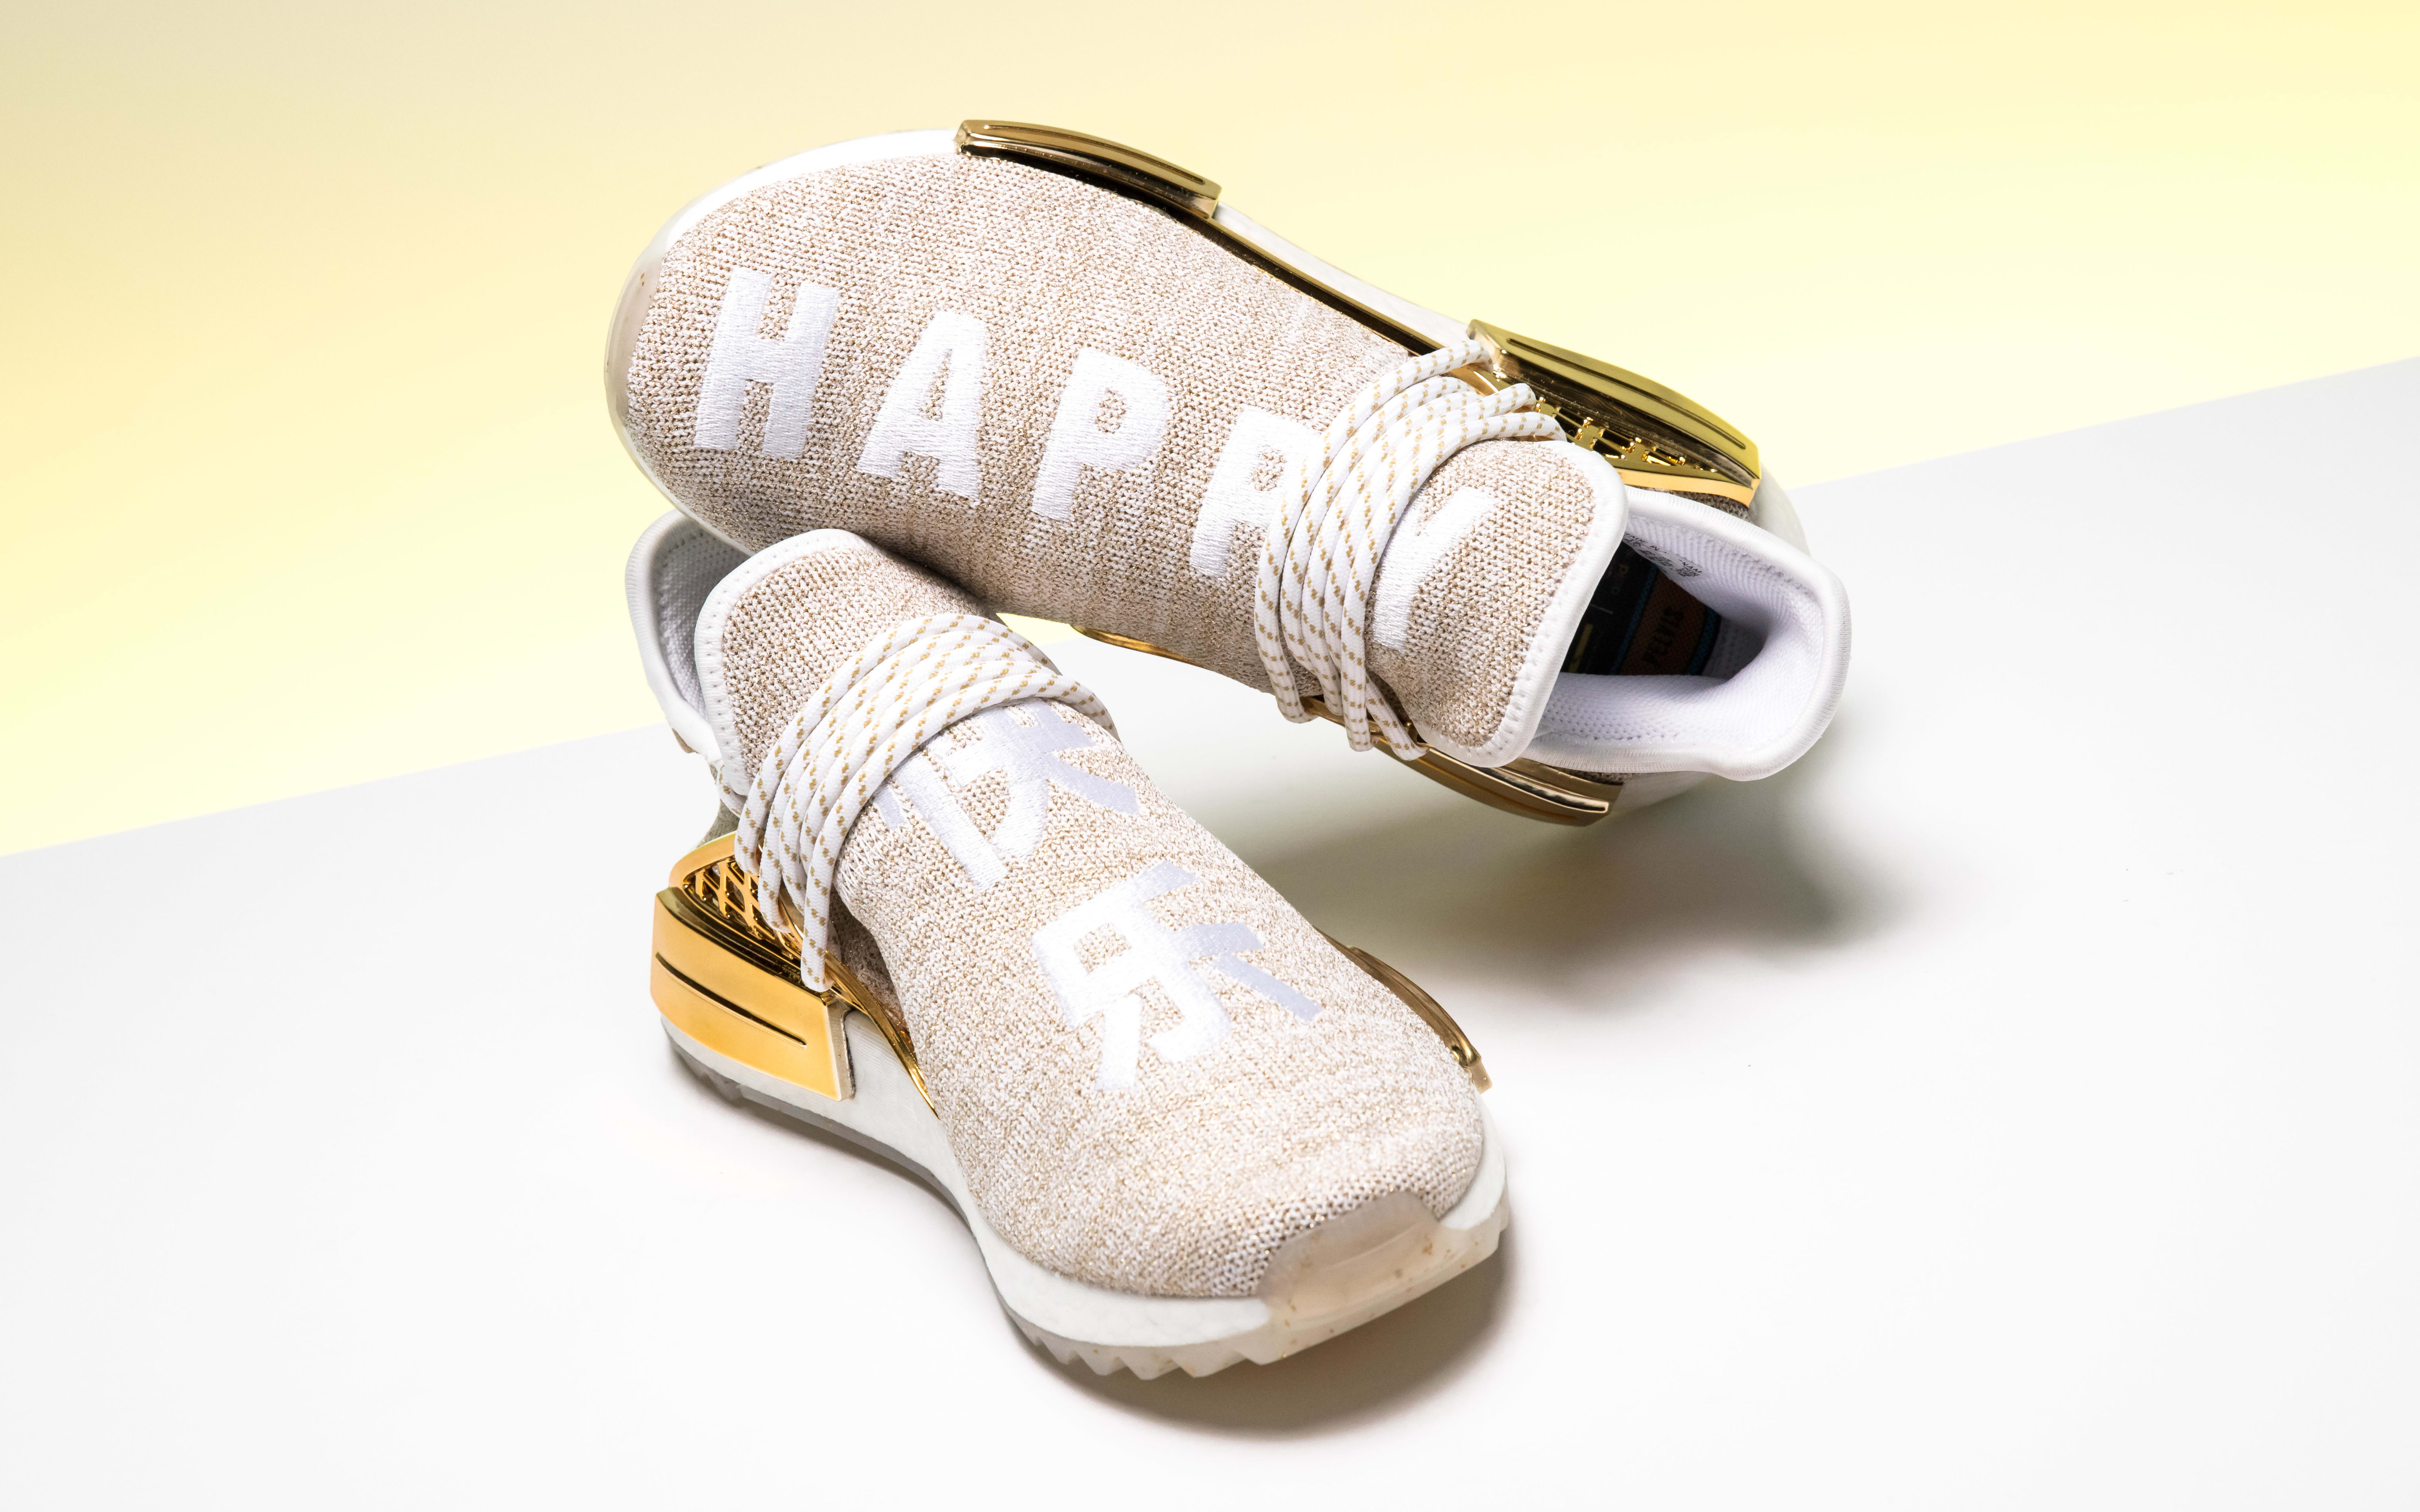 Pharrell Williams x Adidas NMD Hu China Exclusive 'Happy' Gold F99762 (Pair)